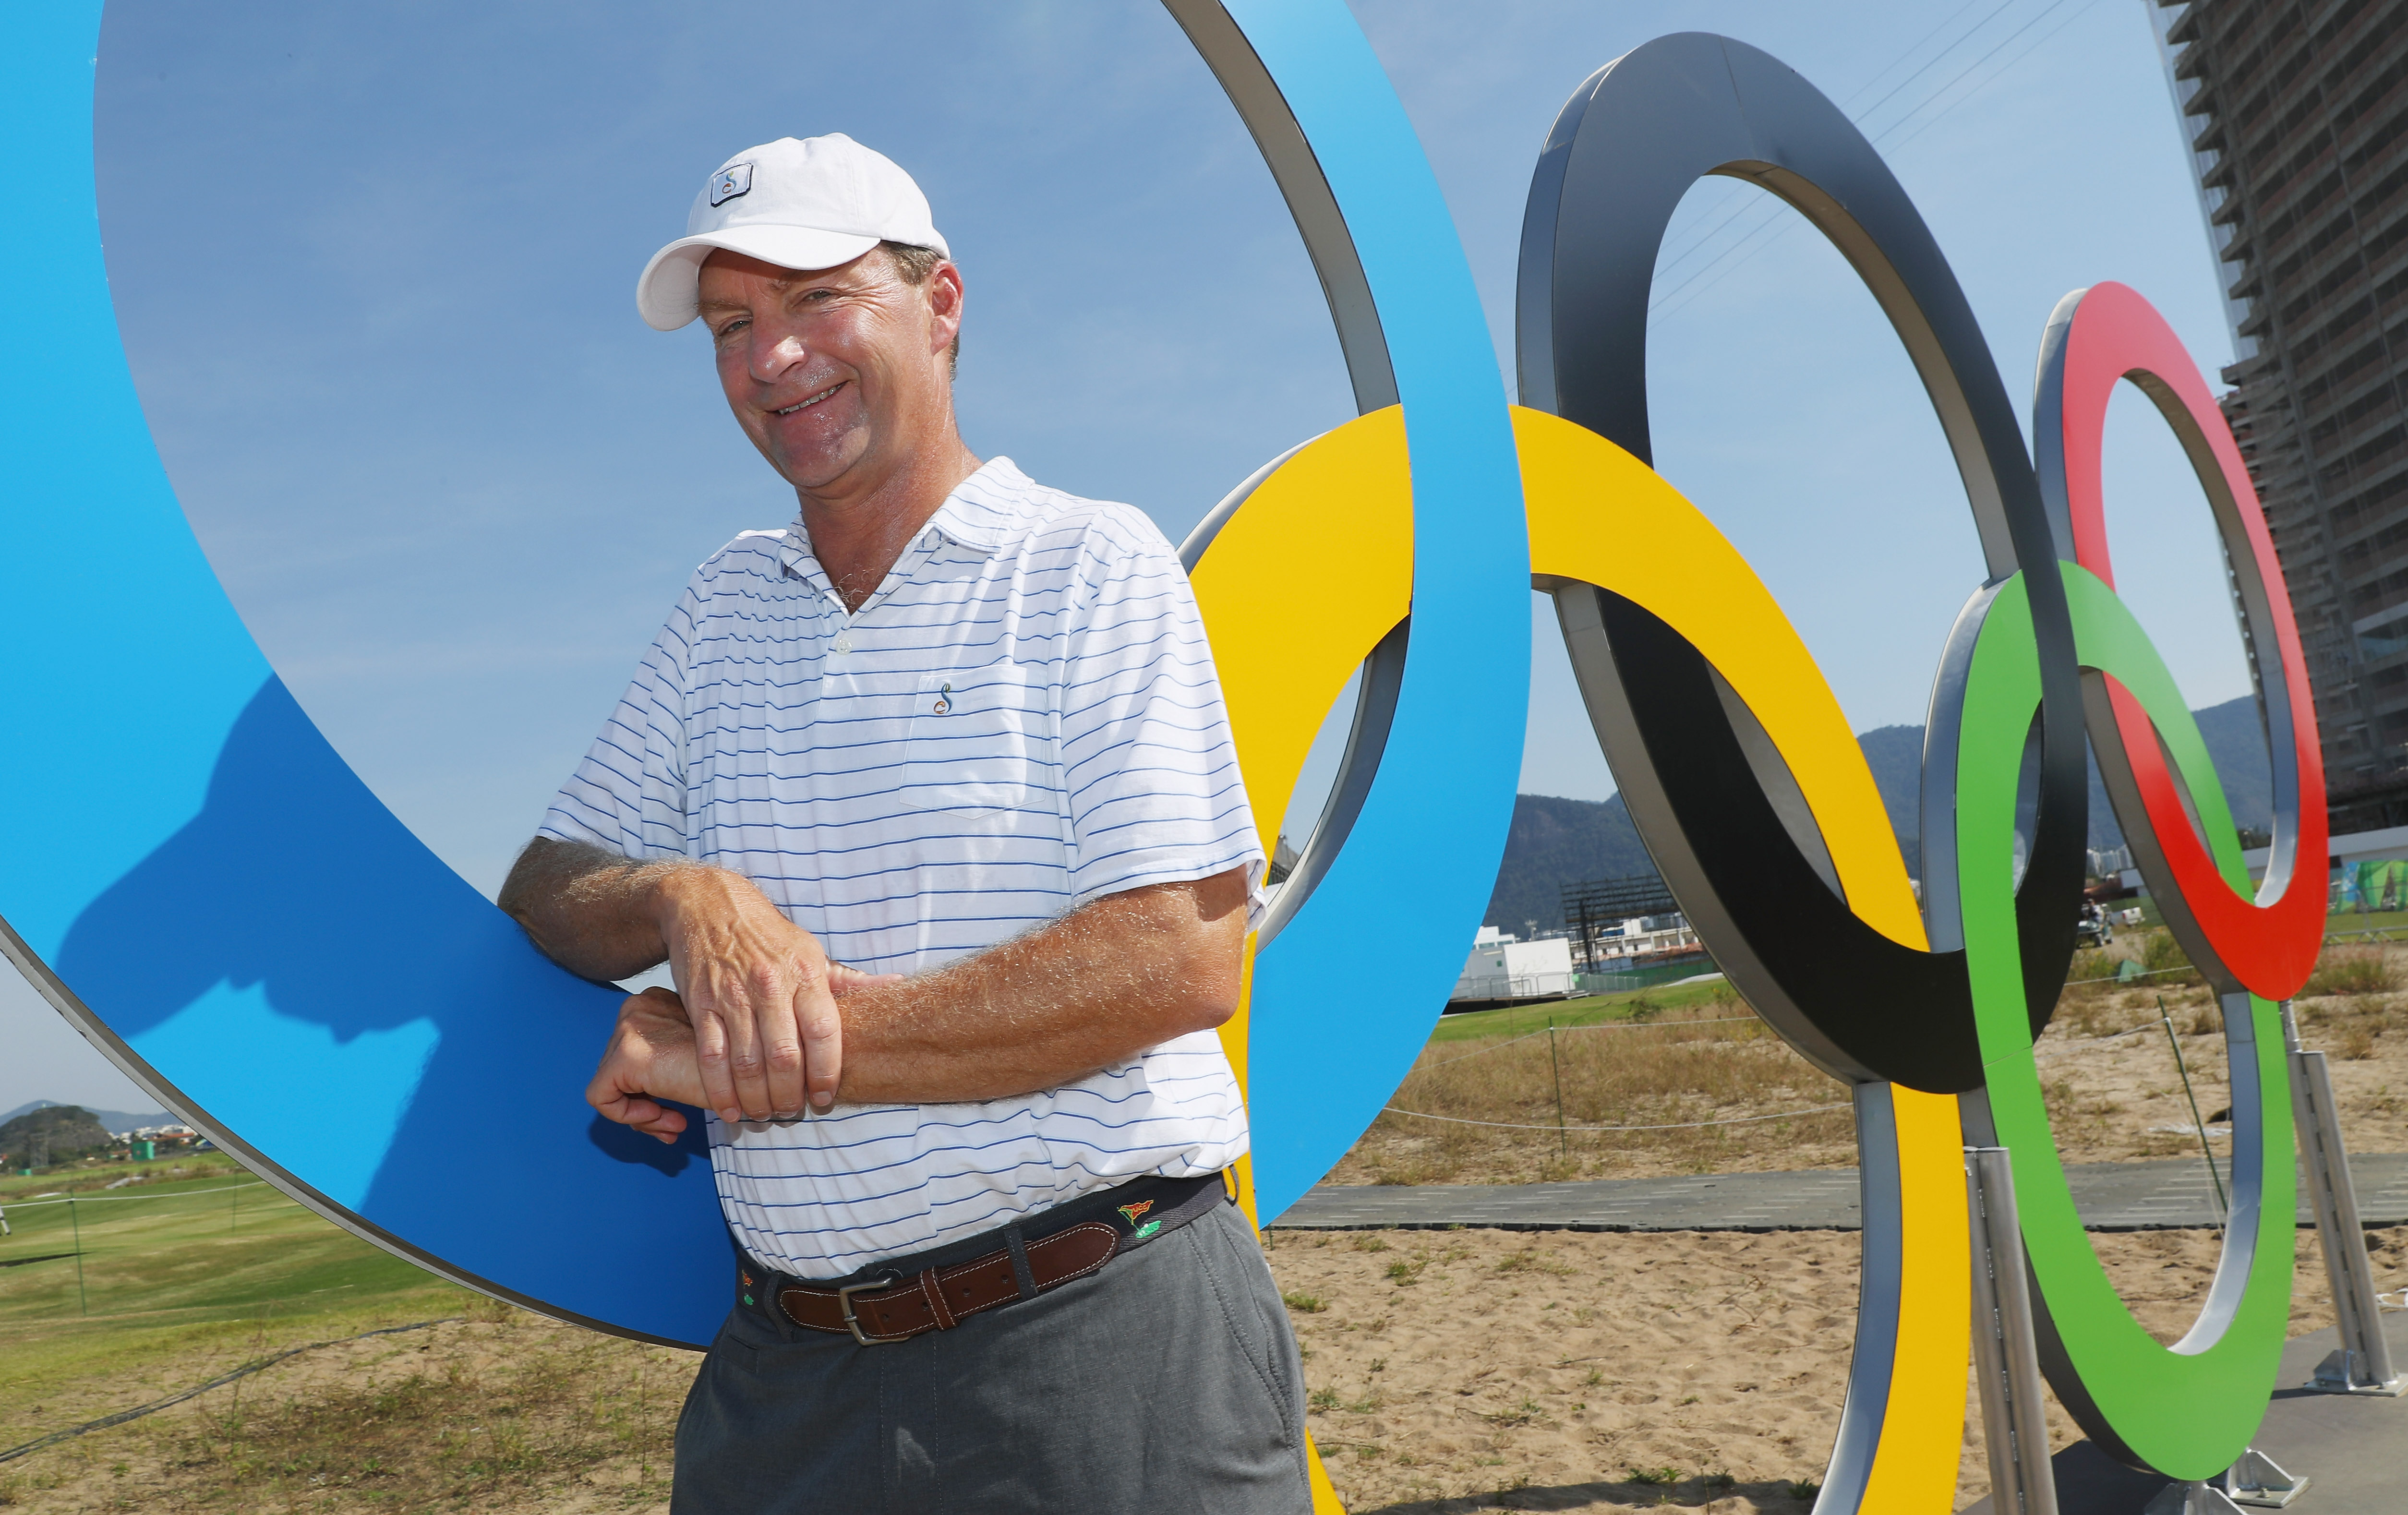 Gil Hanse earned the bid to design the Olympic Golf Course in Brazil over the likes of Jack Nicklaus, Gary Player and Greg Norman.